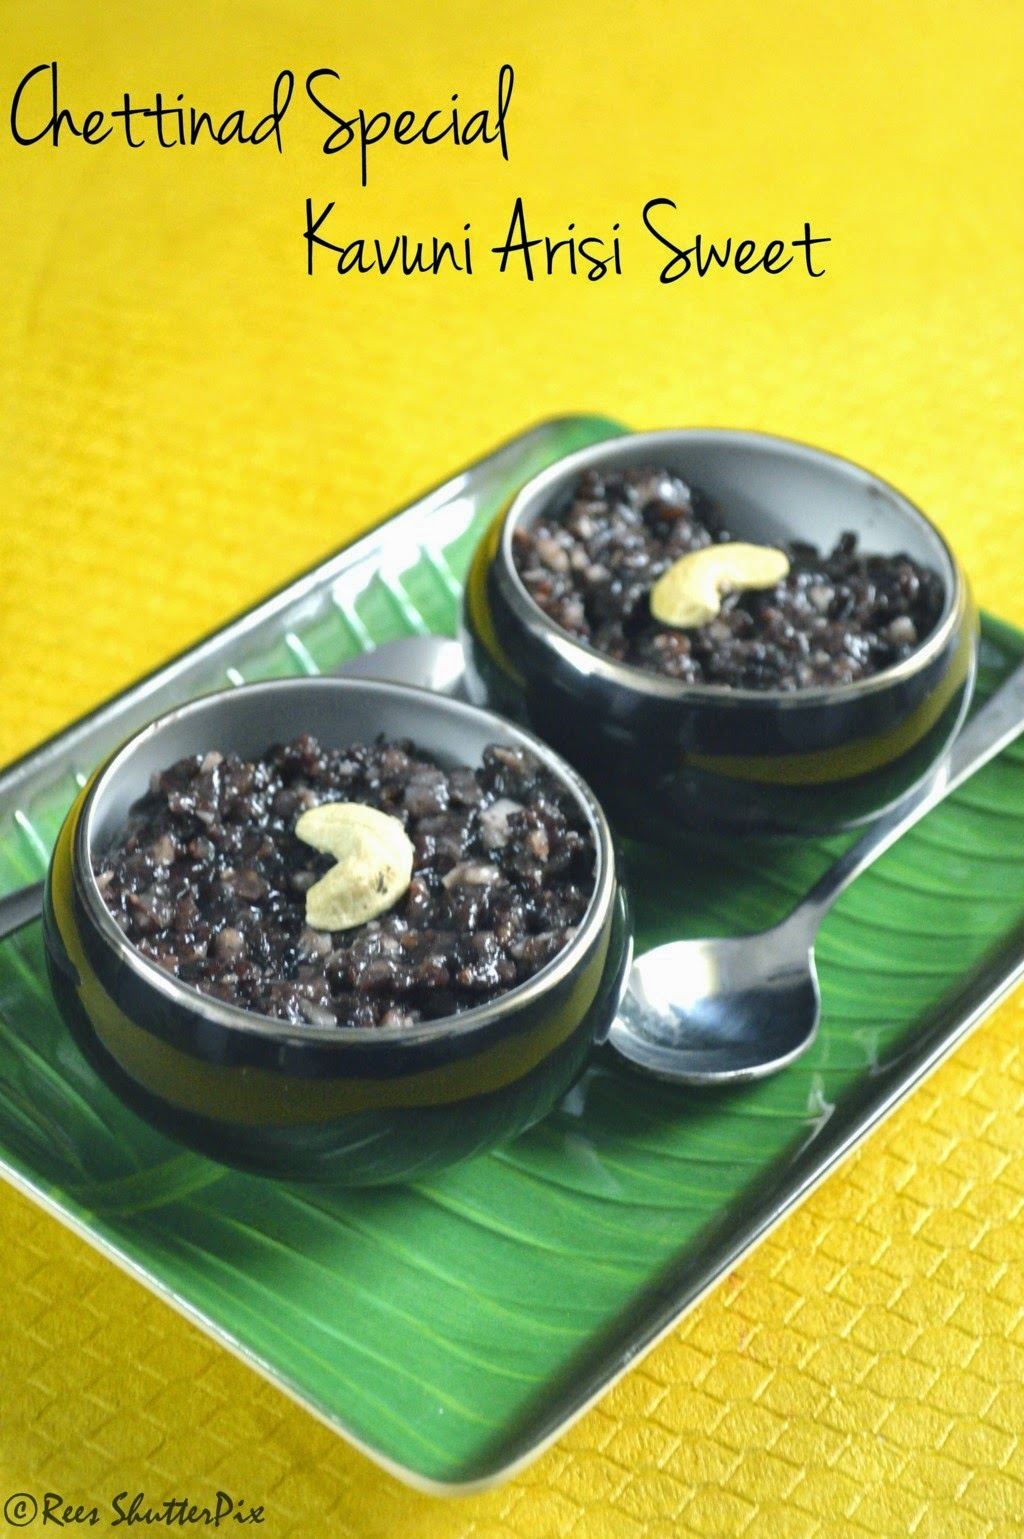 Chettinad Recieps, Desserts, kavuni arisi sweet, kavuni arisi sweet, chettinad special recipes, easy chettinad desserts, black rice pudding,thai style black rice pudding, karaikudi special foods.